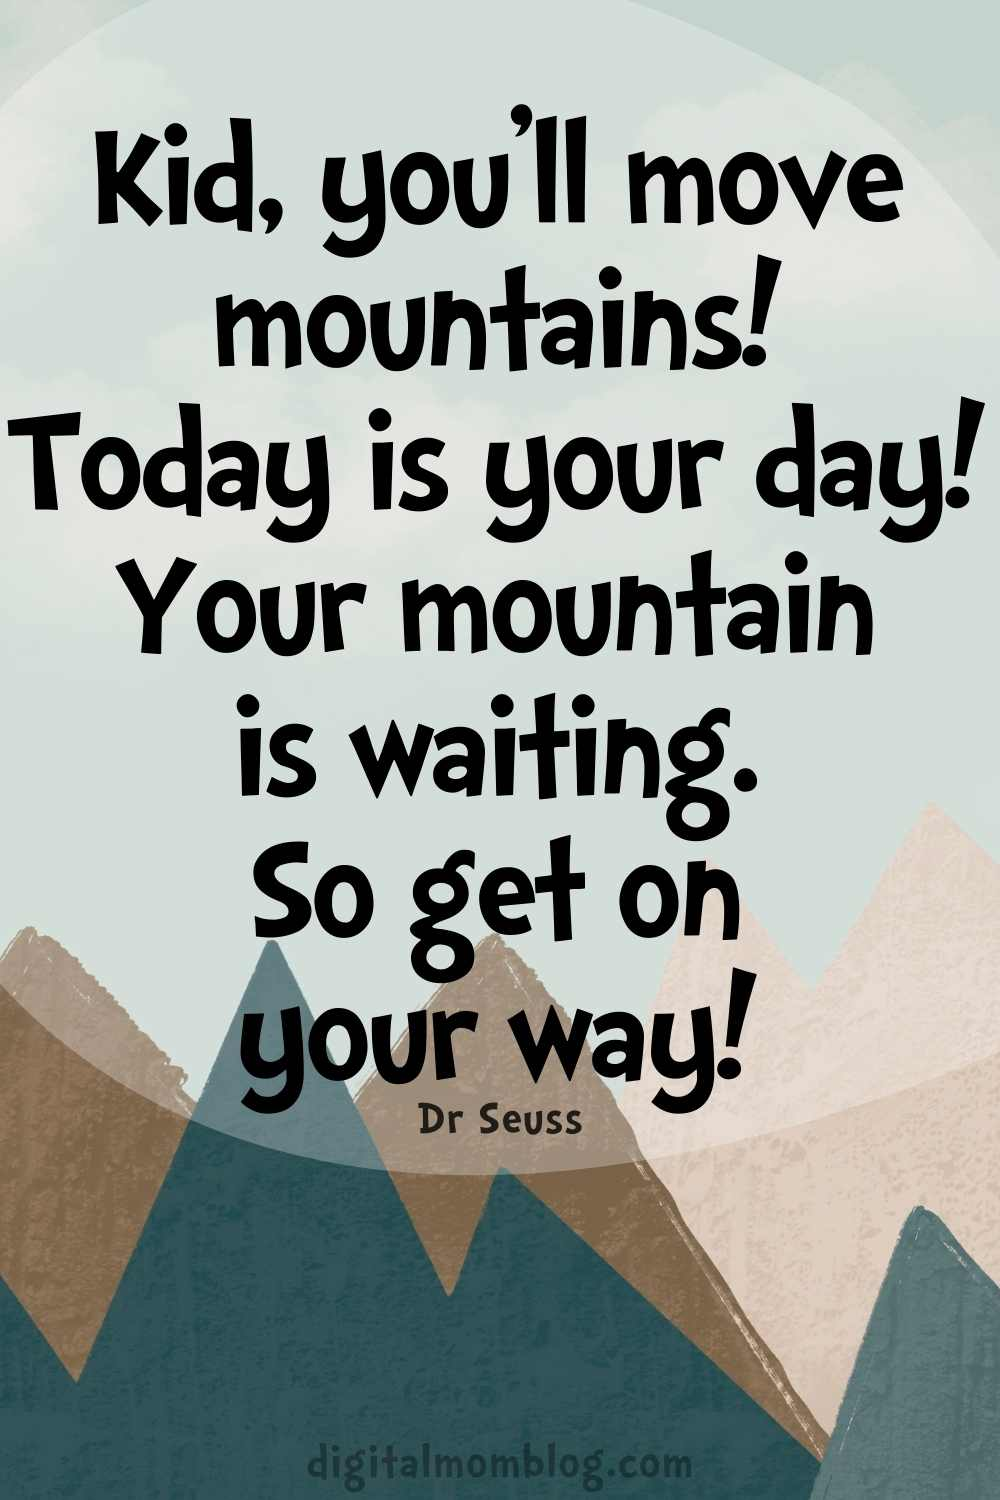 Kid, you'll move mountains! Today is your day! Your mountain is waiting. So get on your way! dr seuss quotes for kids